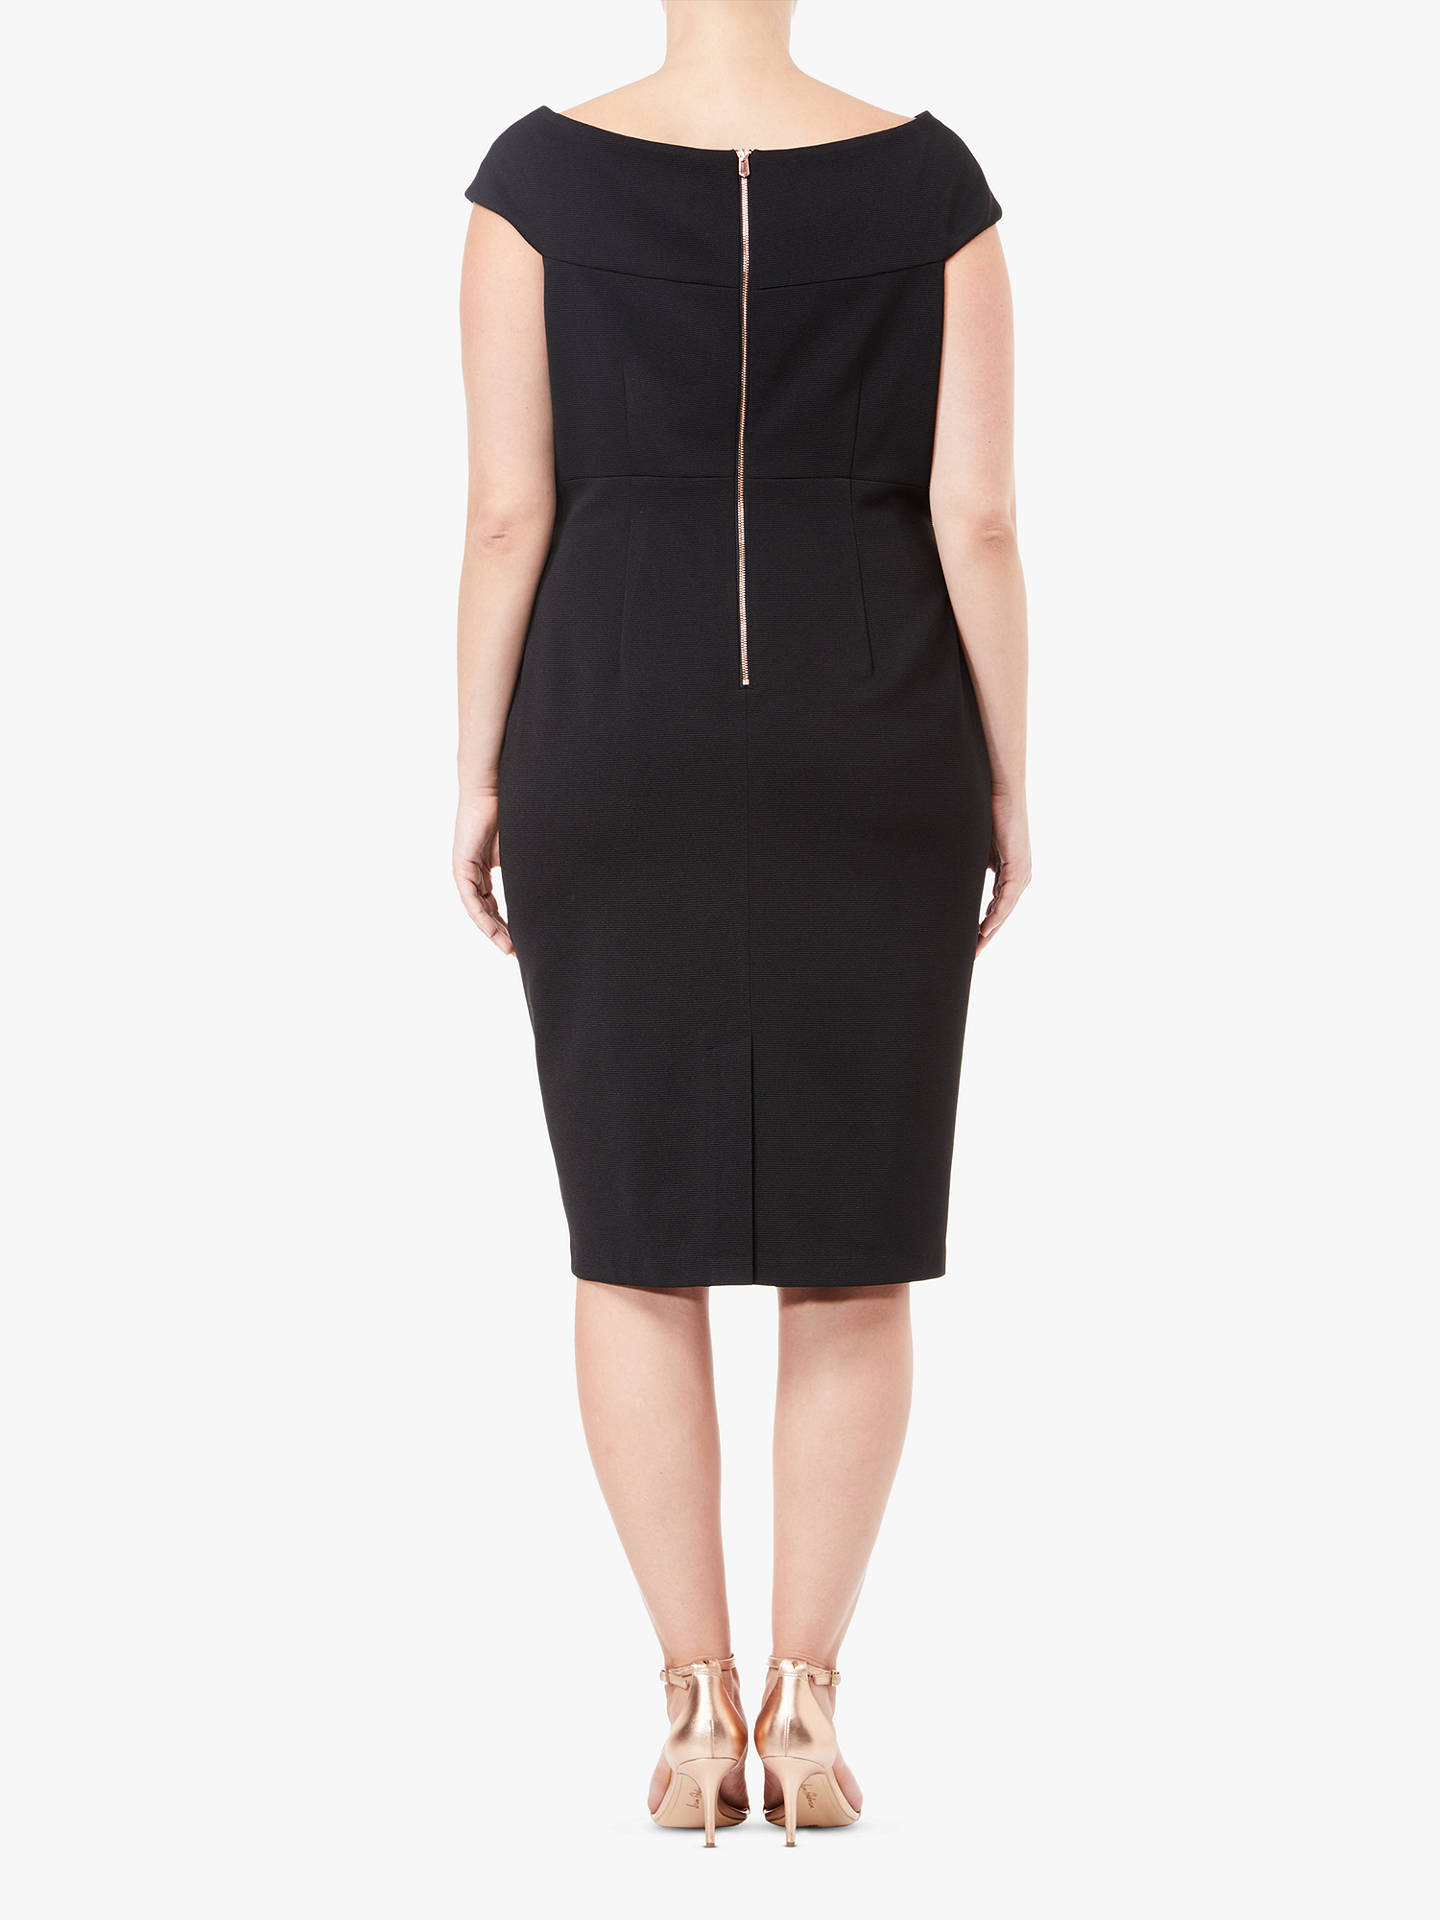 BuyAdrianna Papell Sleeveless Sheath Dress, Black, 6 Online at johnlewis.com